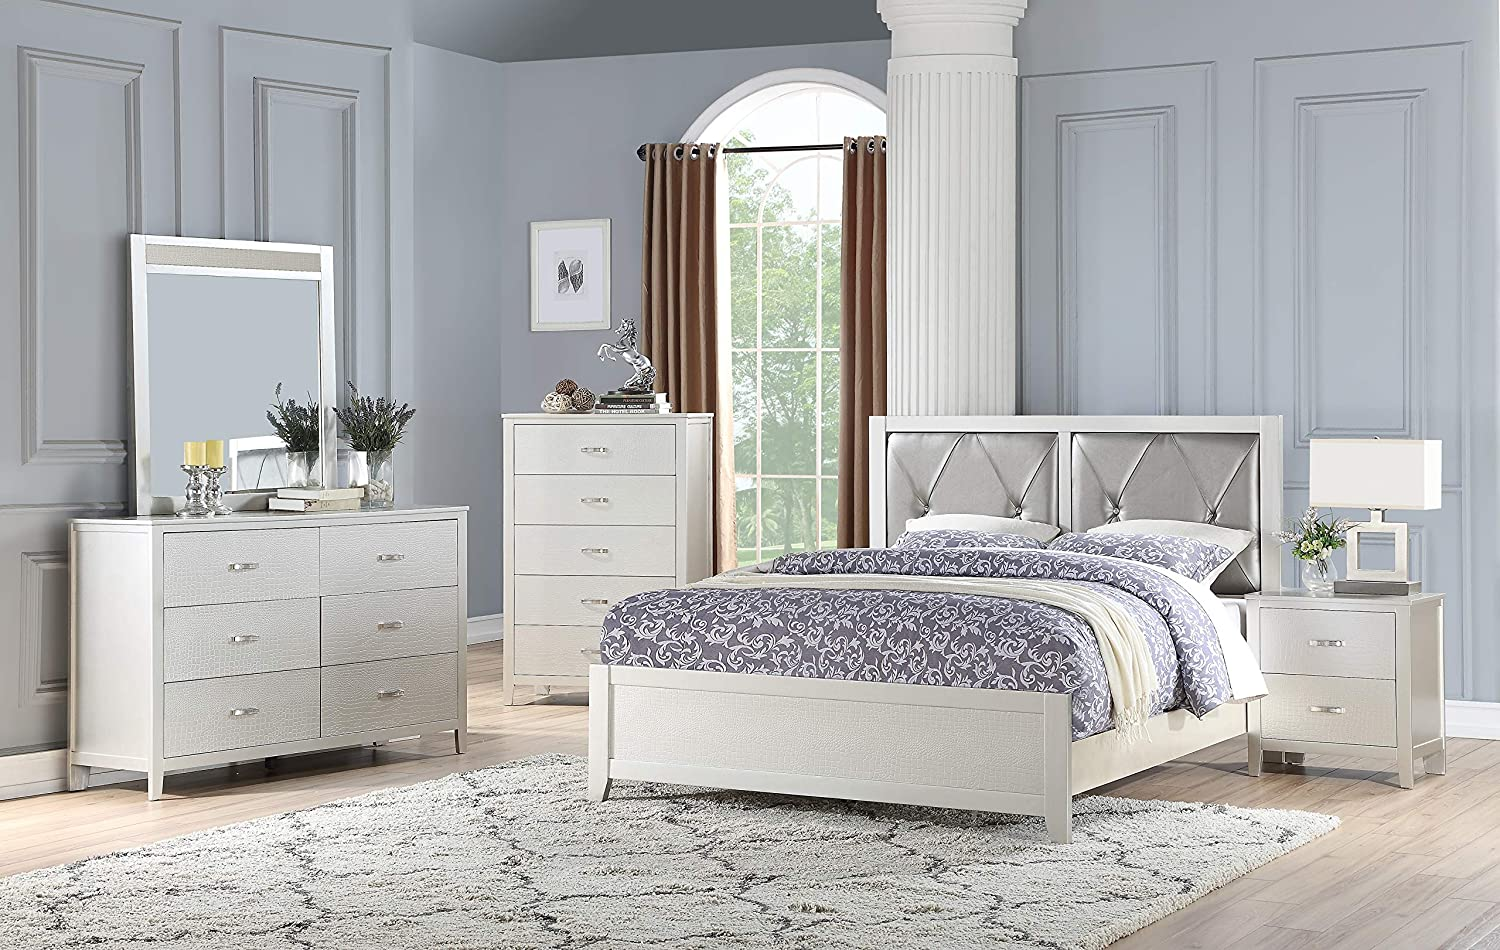 Amazon com esofastore modern classic beautiful traditional look silver 4pc set bedroom furniture queen size bed dresser mirror nightstand faux leather